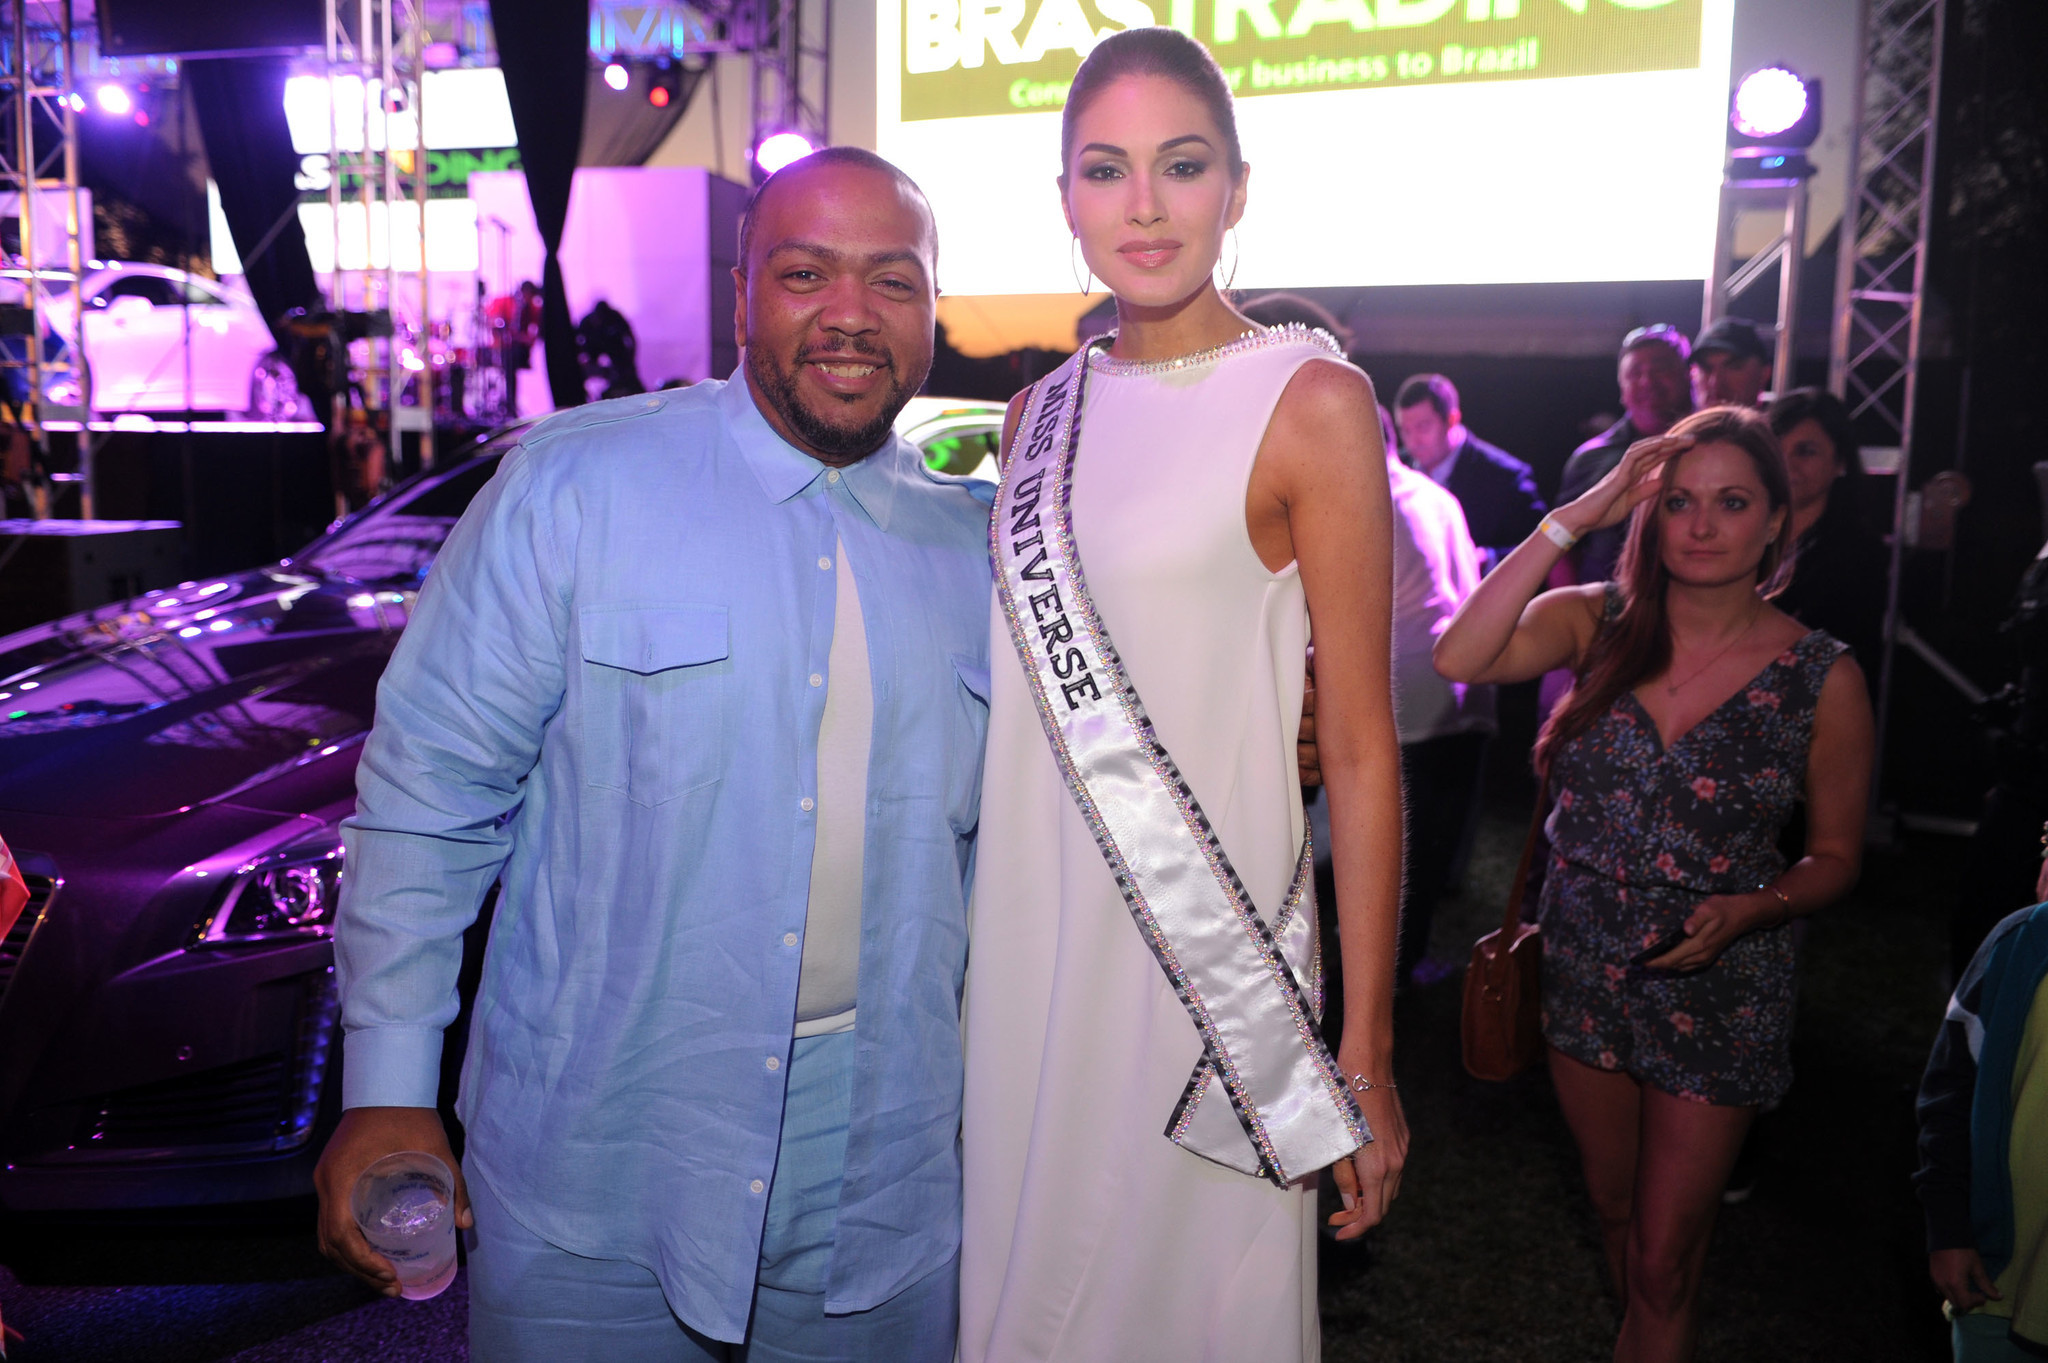 Celeb-spotting around South Florida - World Golf Championships-Cadillac Championship parties